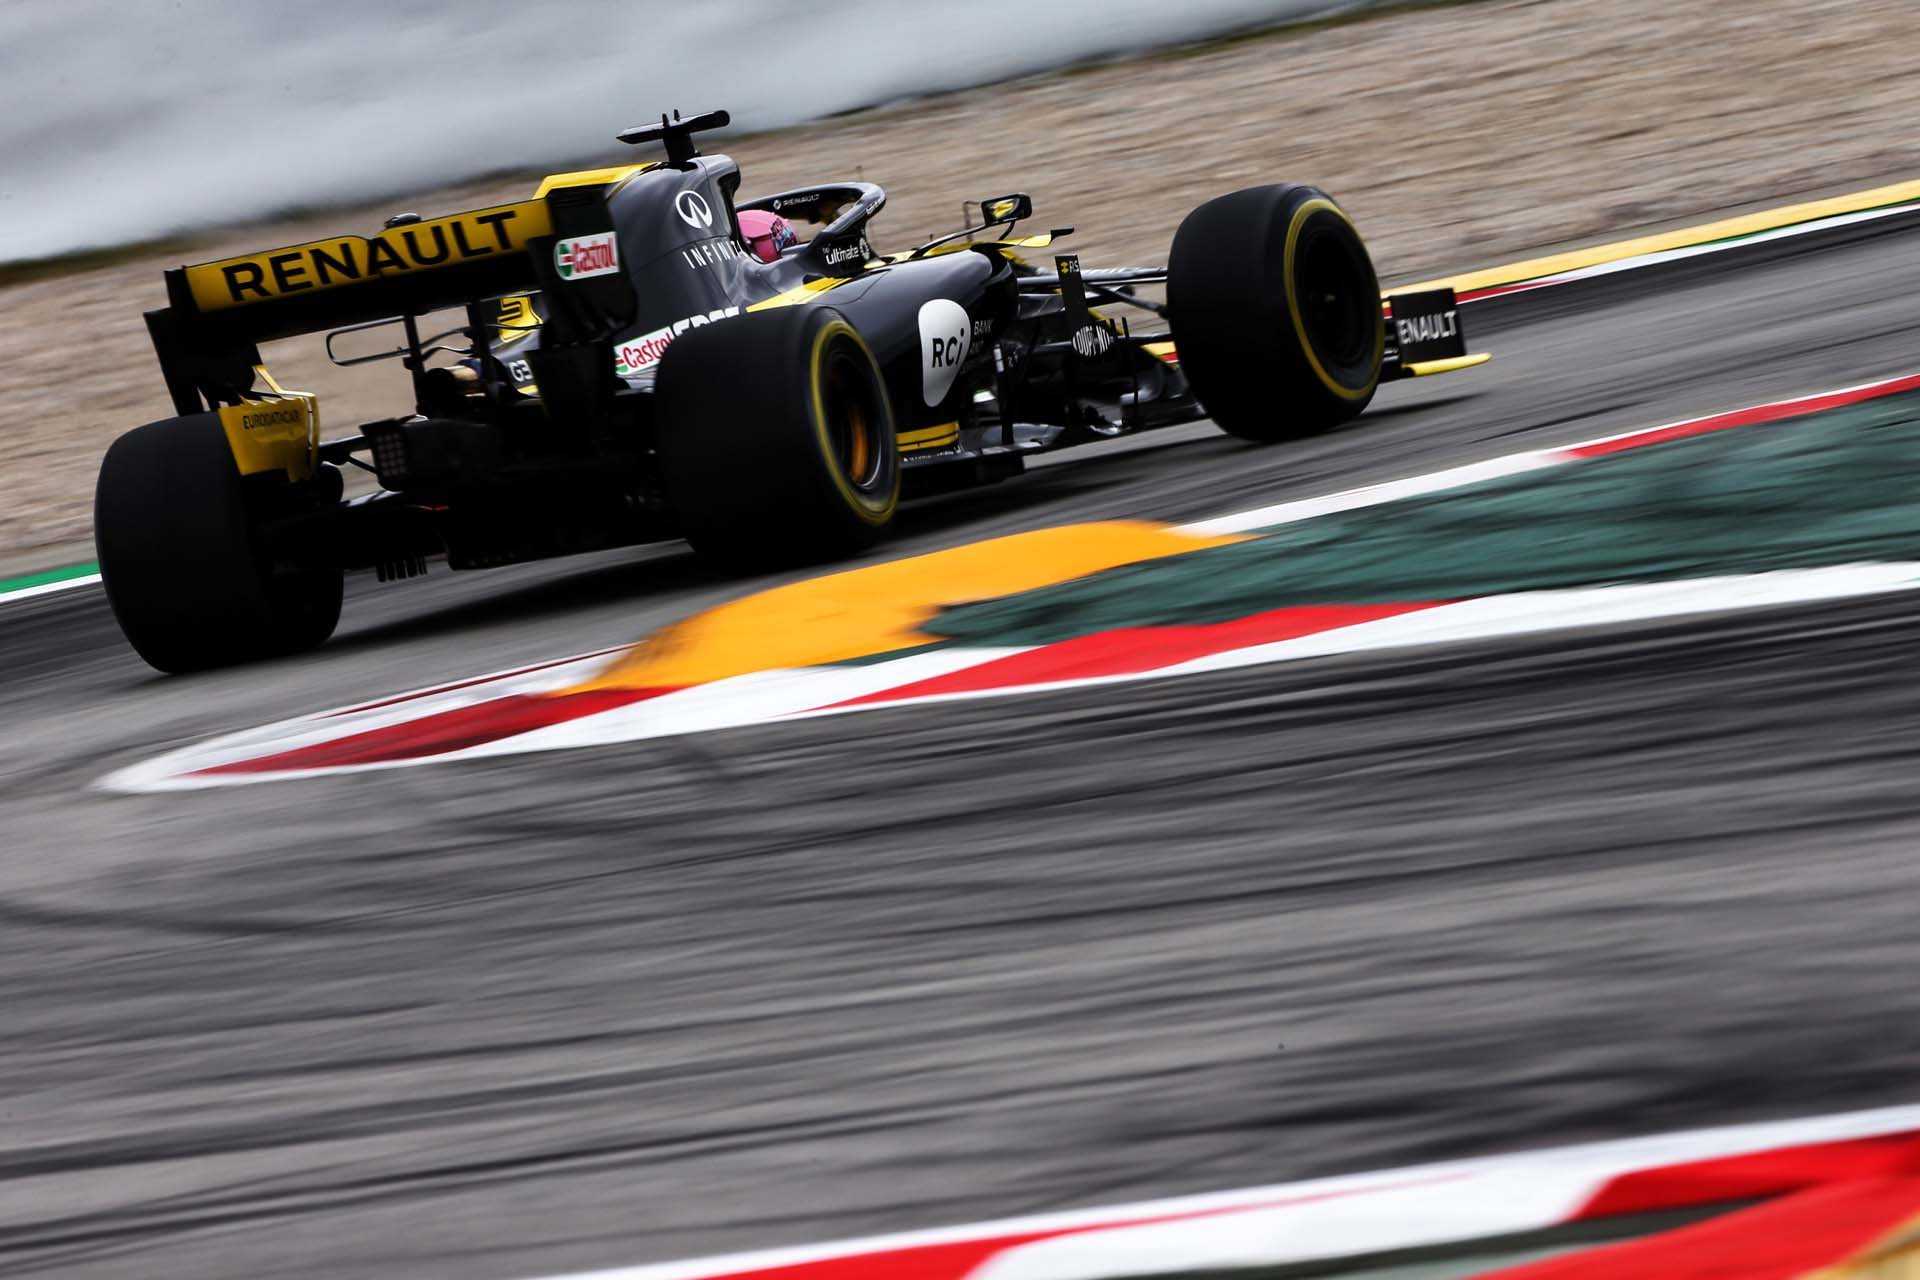 Motor Racing - Formula One World Championship - Spanish Grand Prix - Qualifying Day - Barcelona, Spain